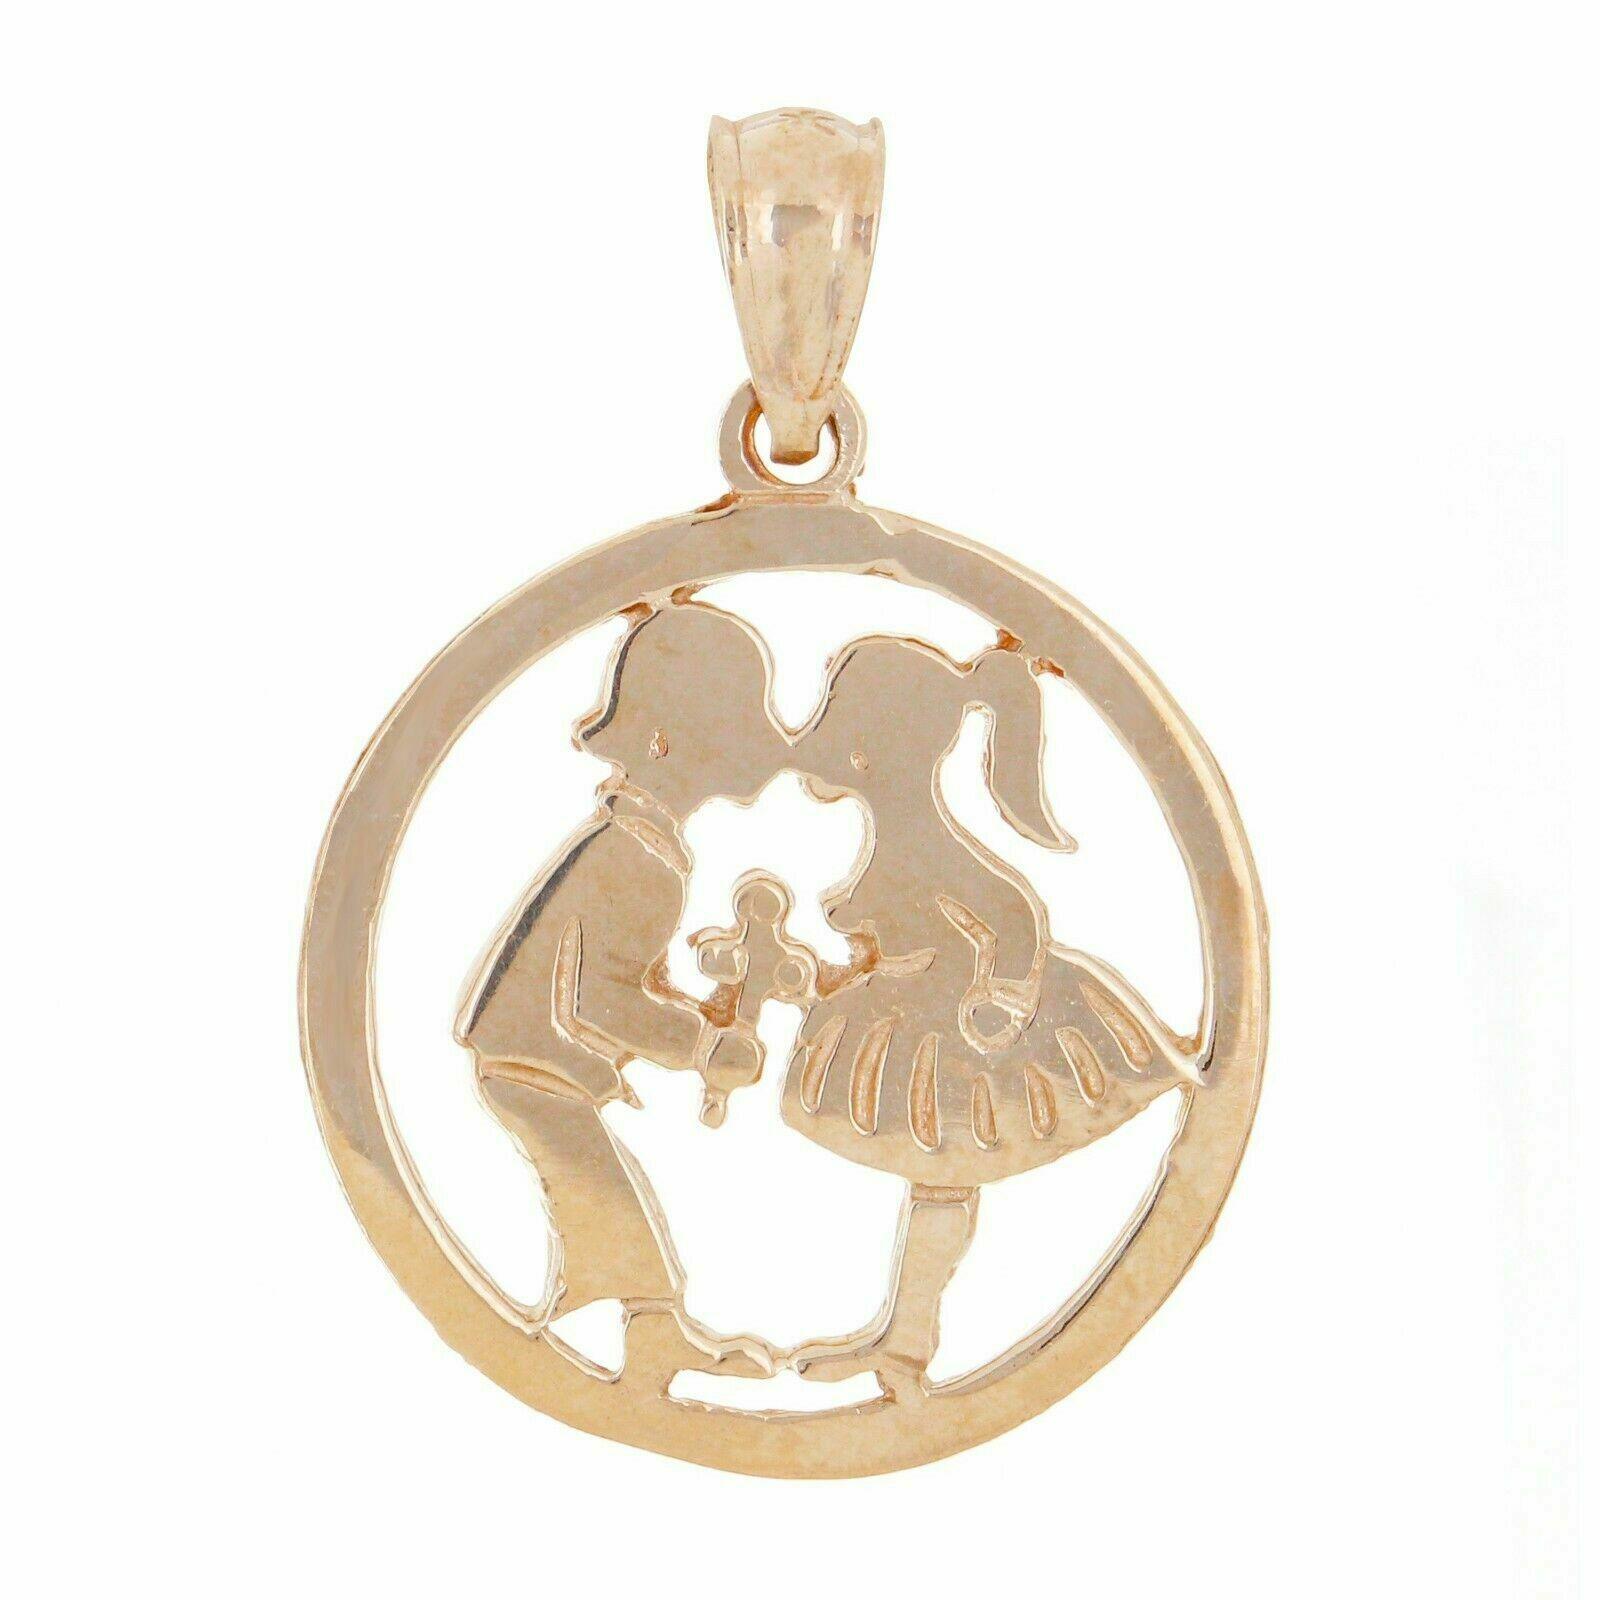 14K Yellow Gold Boy and Girl Kissing Charm Pendant with Chain Necklace